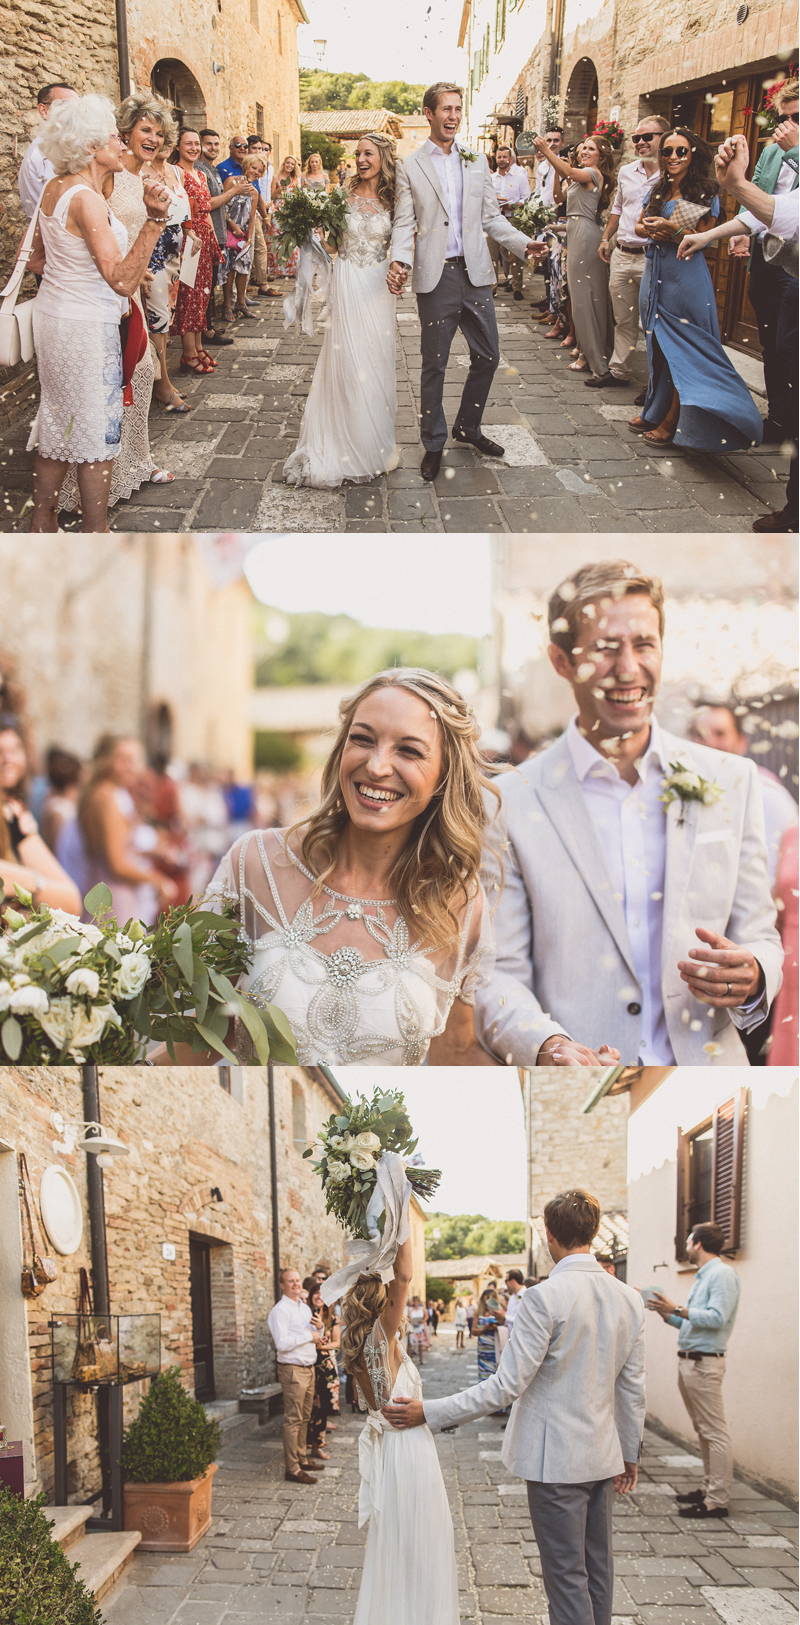 wedding confetti tunnel outdoor wedding ceremony Gemma Richard King Tuscany Bagno Vignoni